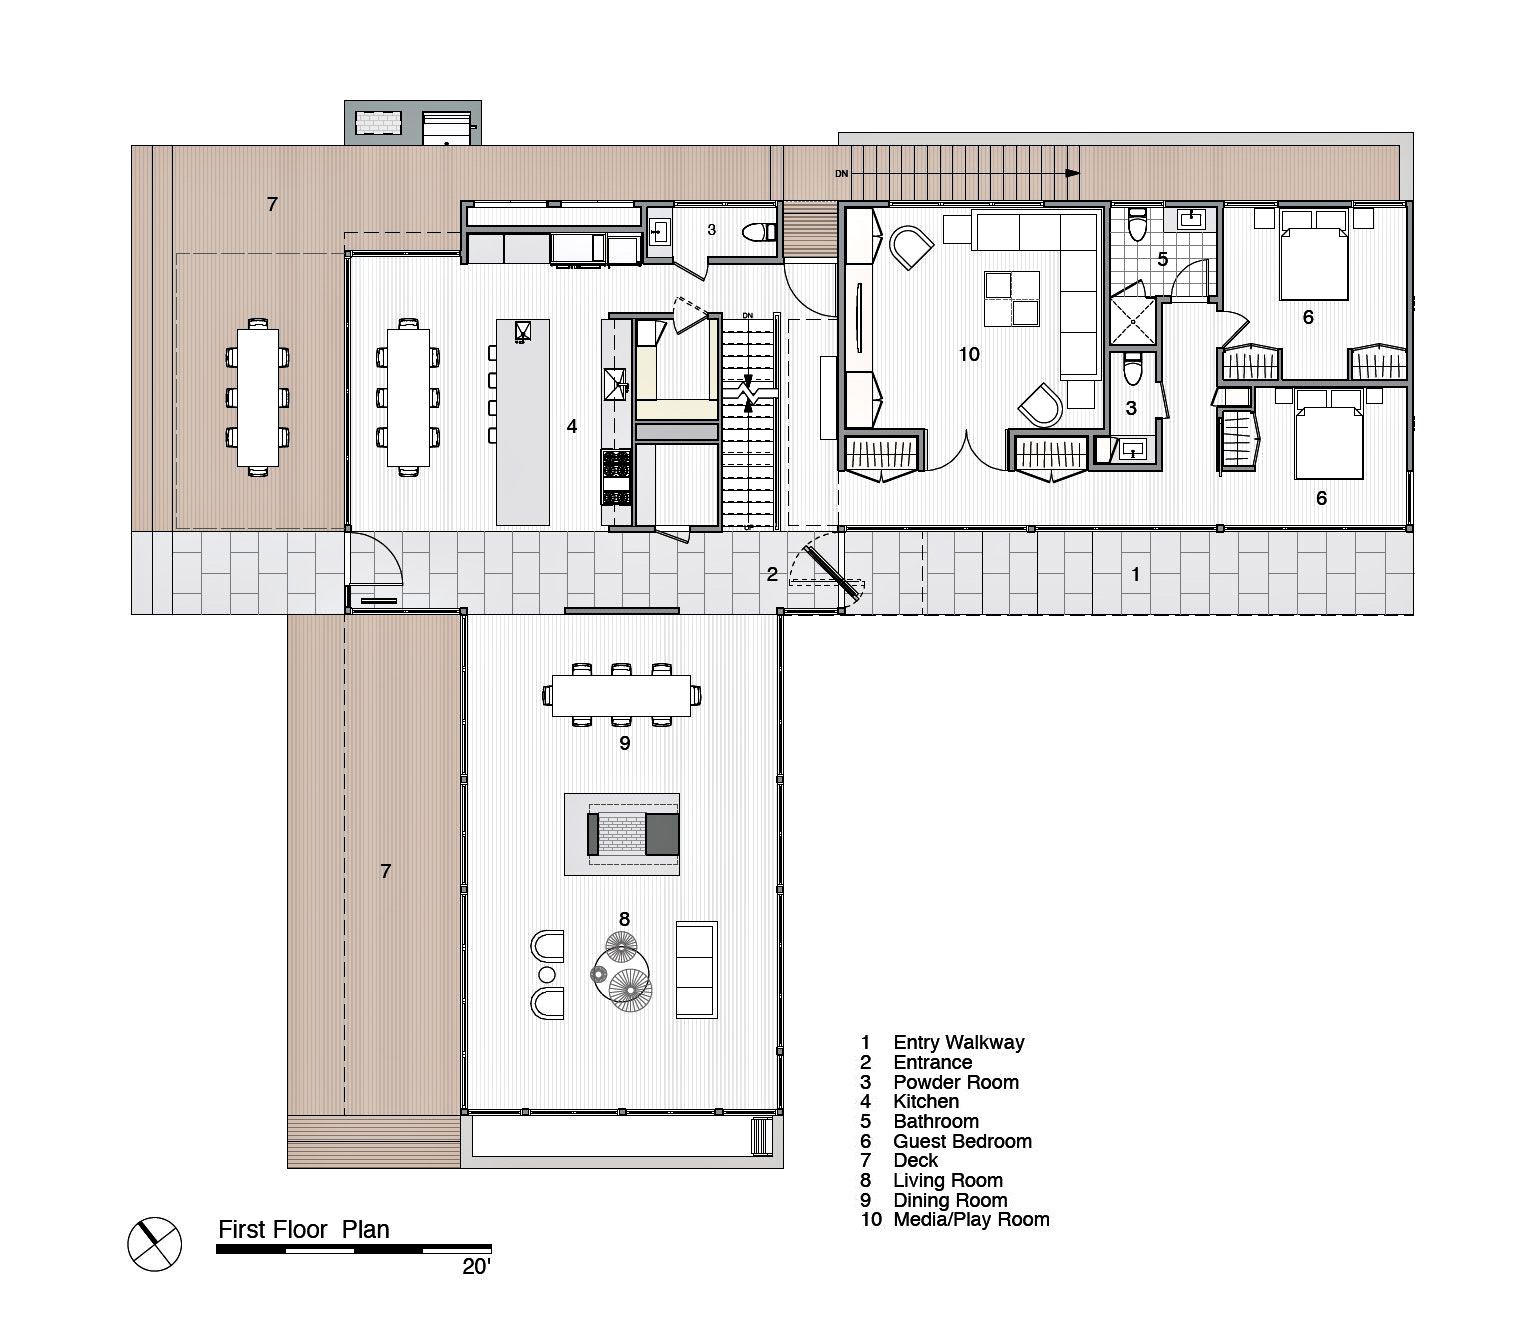 First Floor Plan - Peconic Bay Residence - Clearview Dr, Sag Harbor, NY, USA